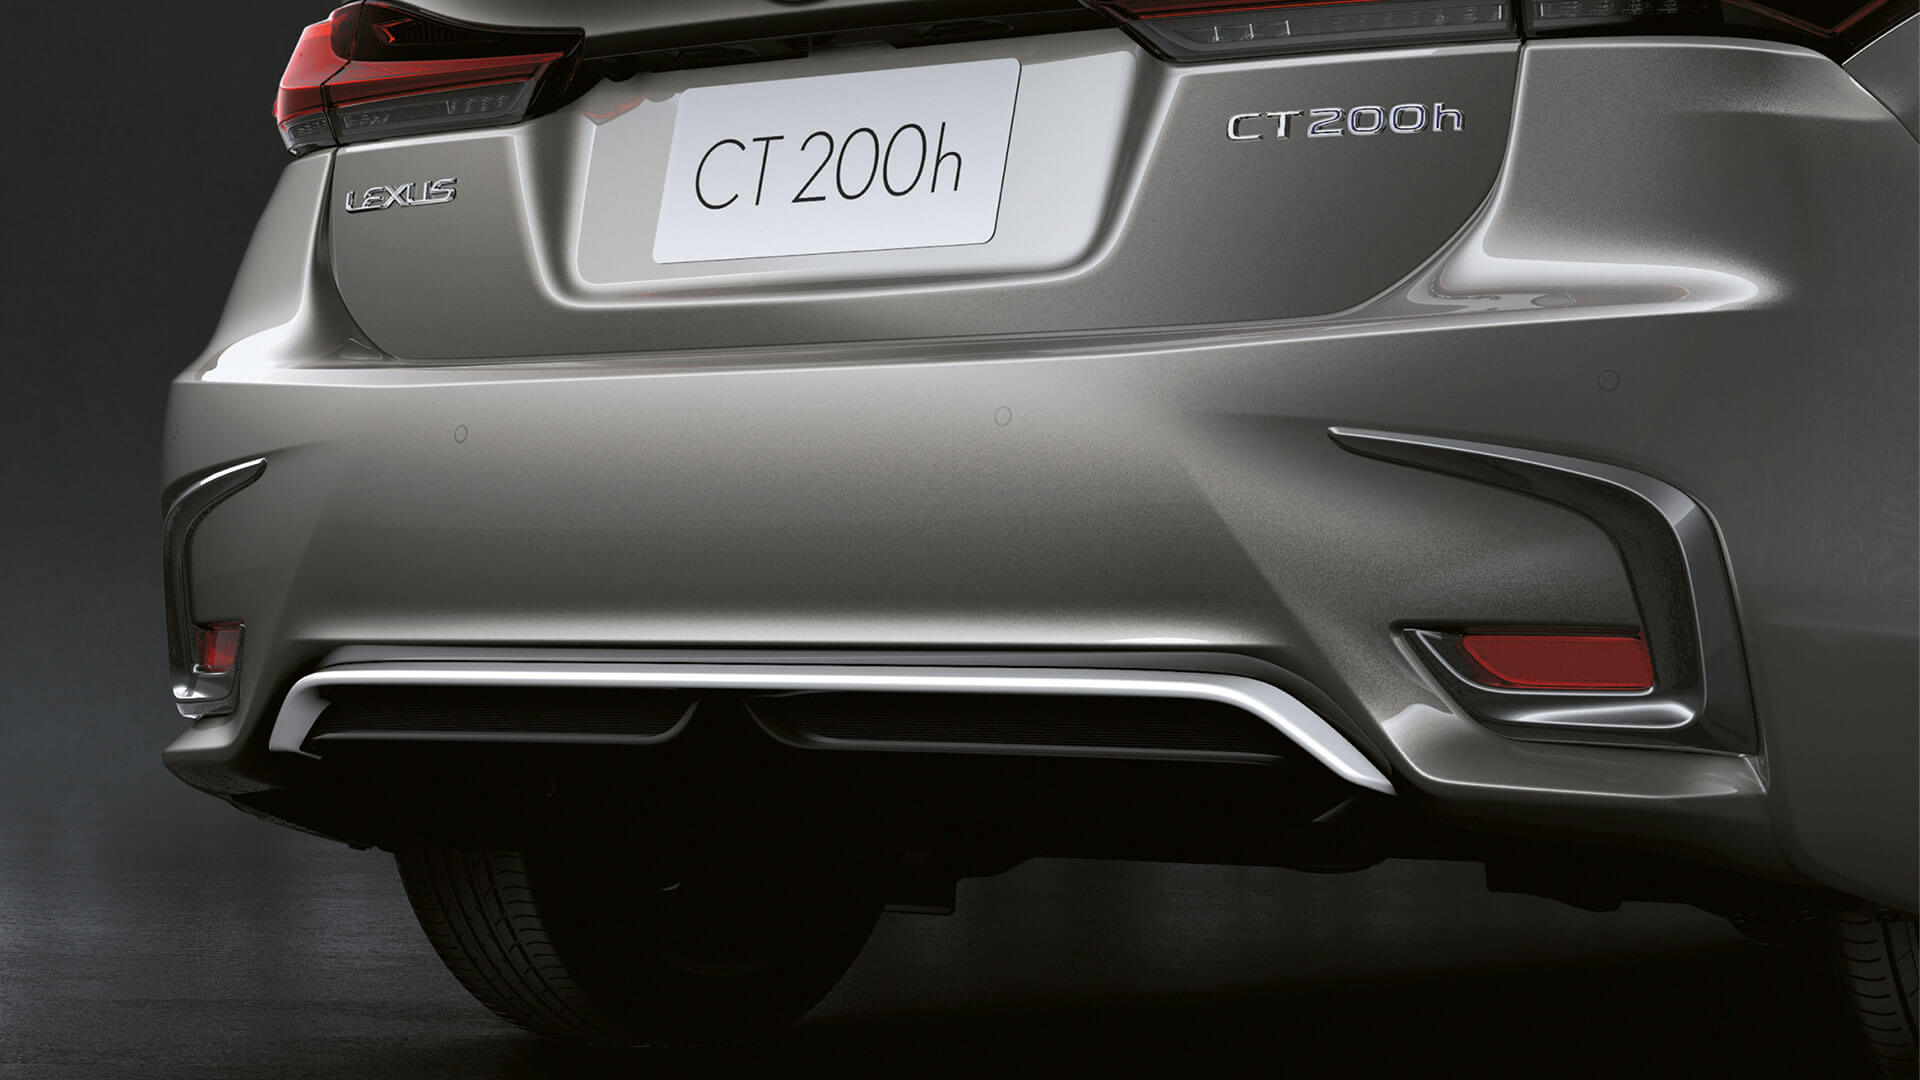 2018 lexus ct 200h my18 features parking assist monitor